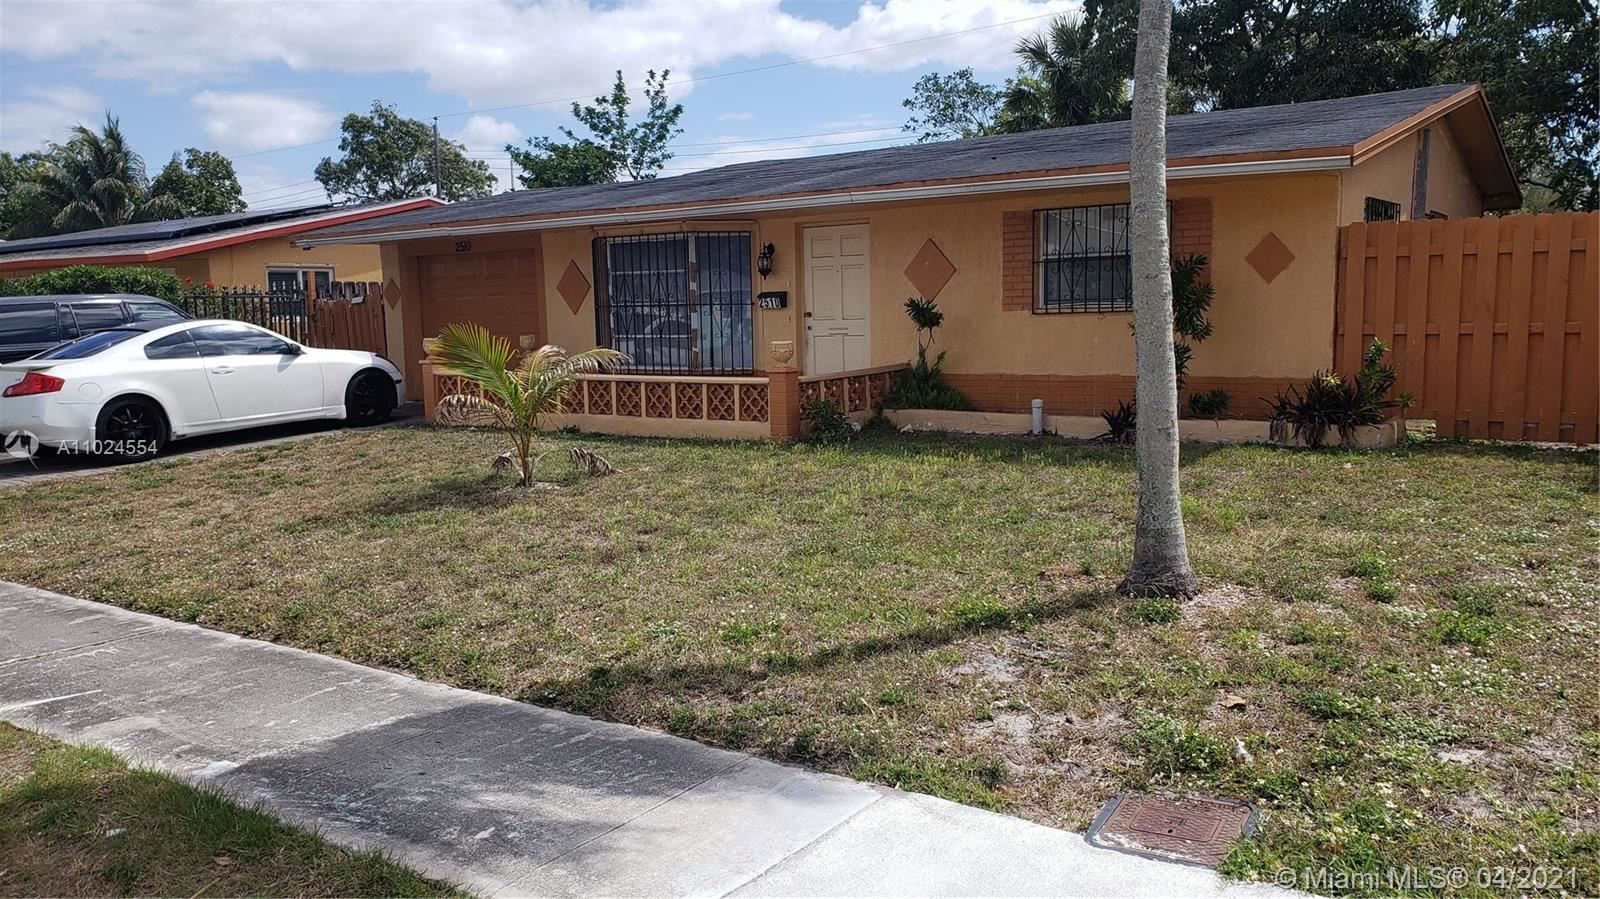 Photo of 2510 NW 47th Ave, Lauderhill, FL 33313 (MLS # A11024554)